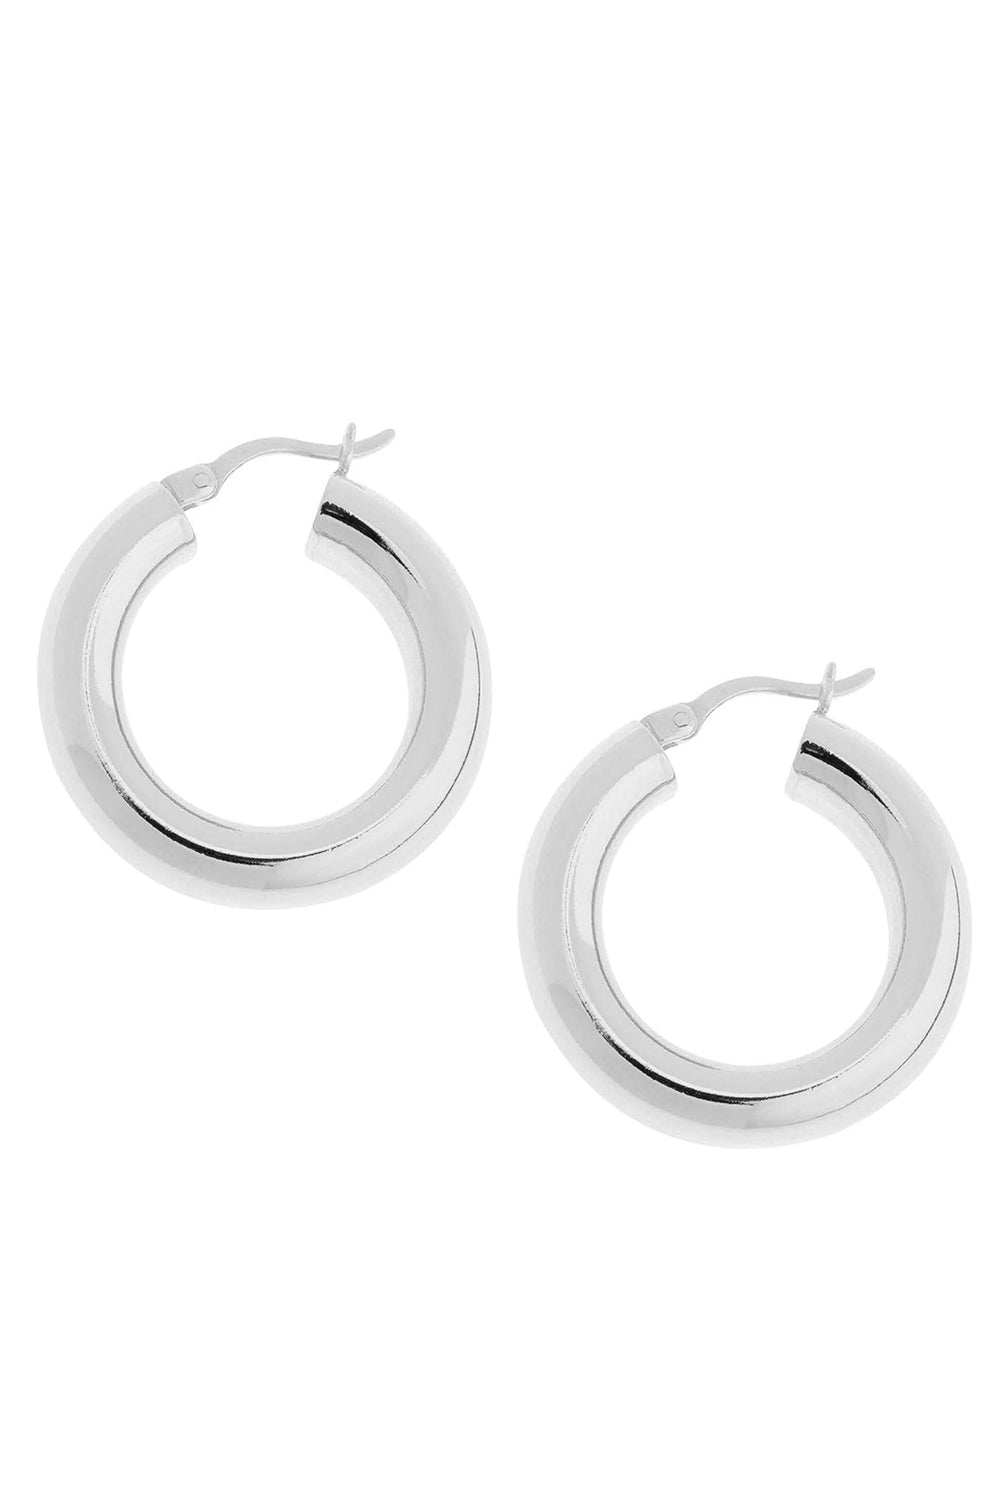 Dominique Hoop in White Gold